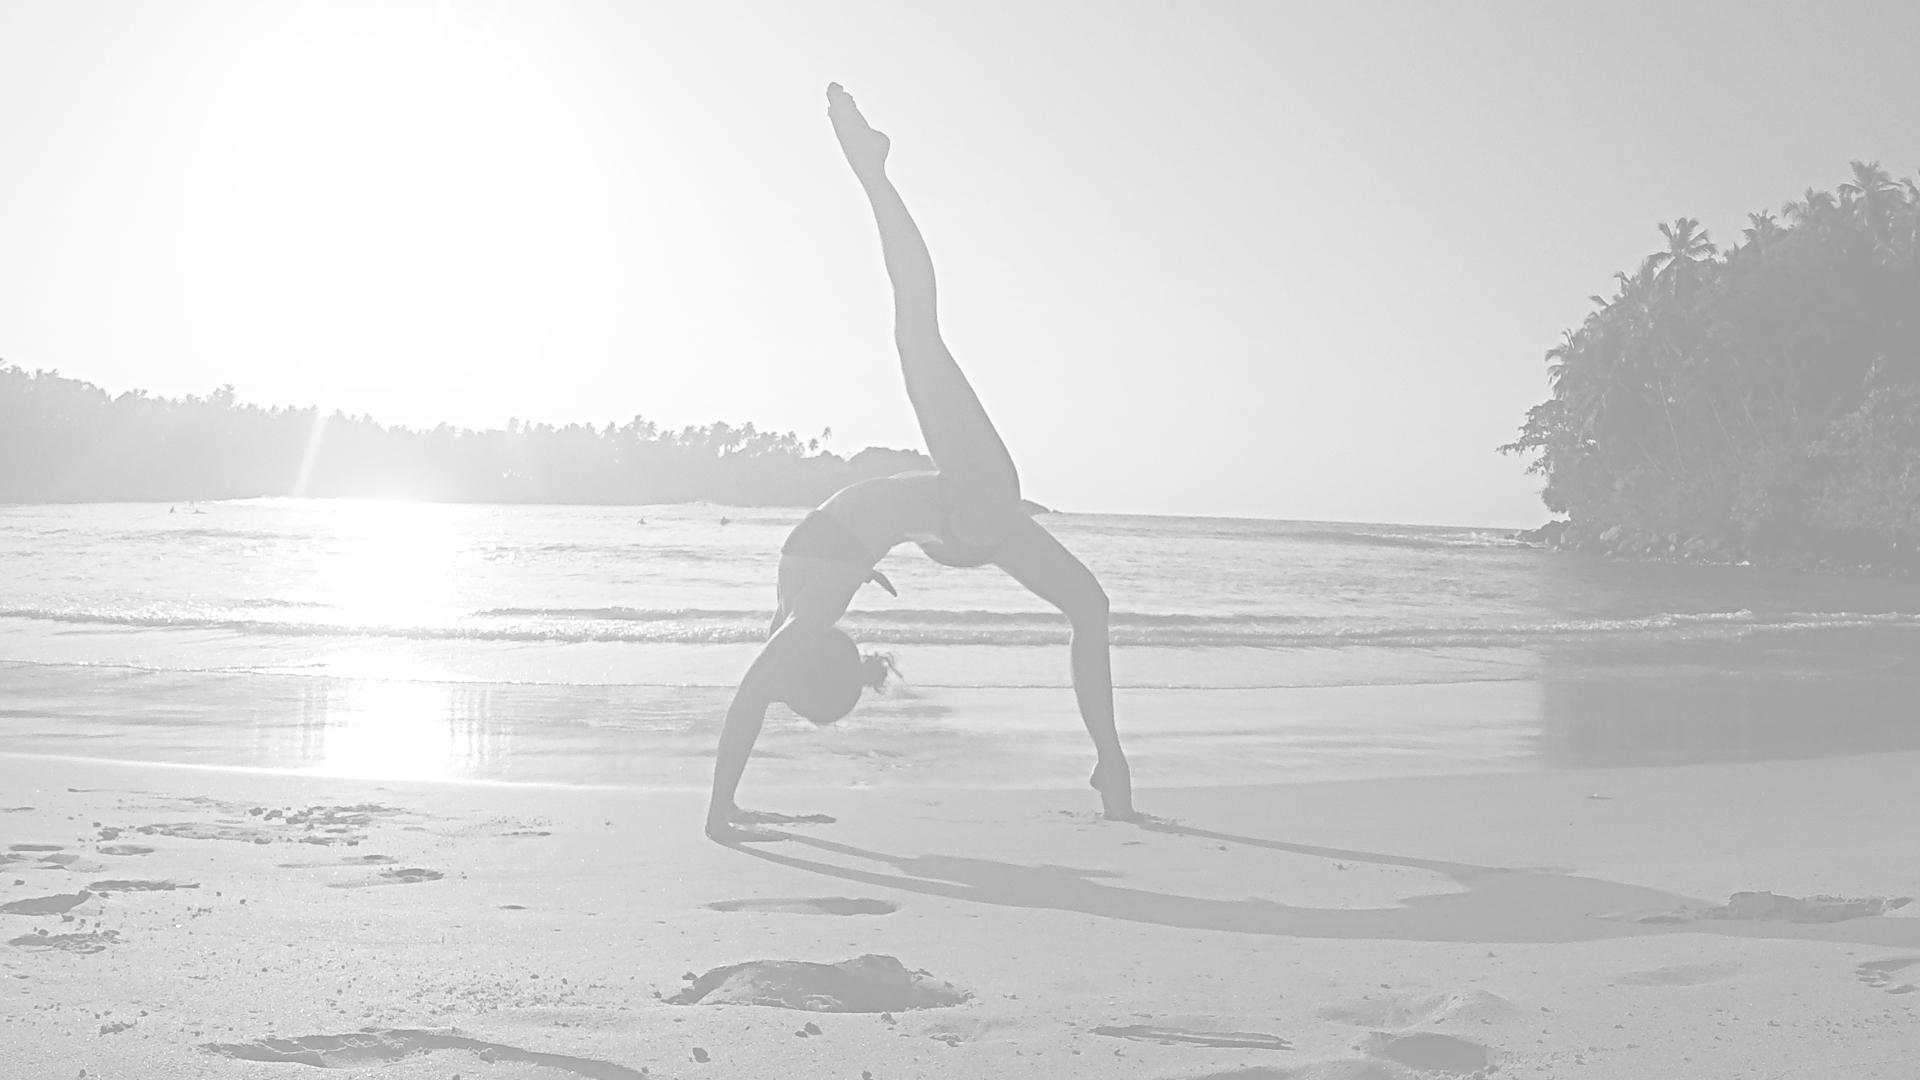 wheel_beach_fayechiyoga